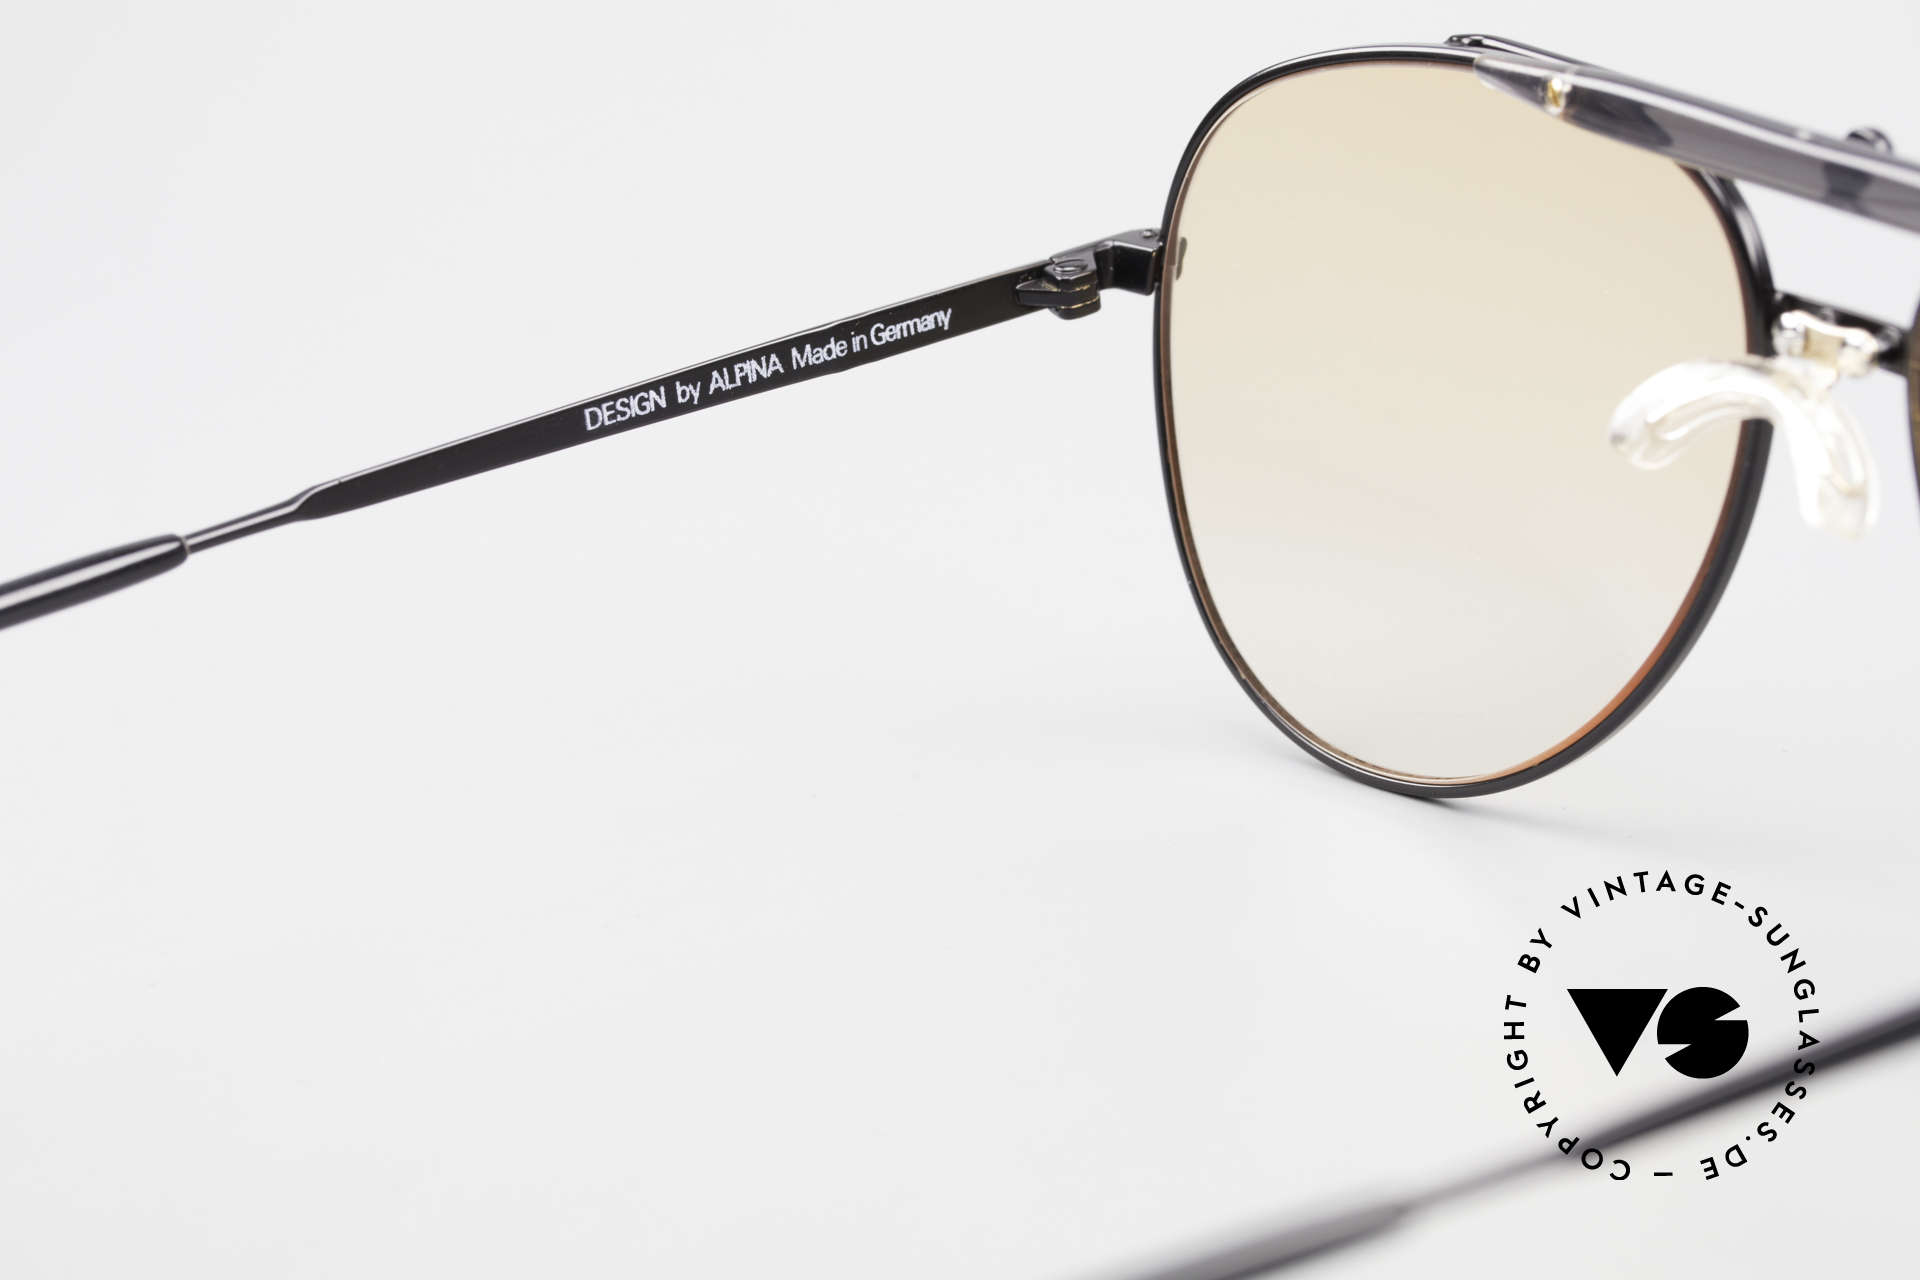 Alpina PCF 250 Sporty 90's Aviator Sunglasses, the frame can be glazed with lenses of any kind, Made for Men